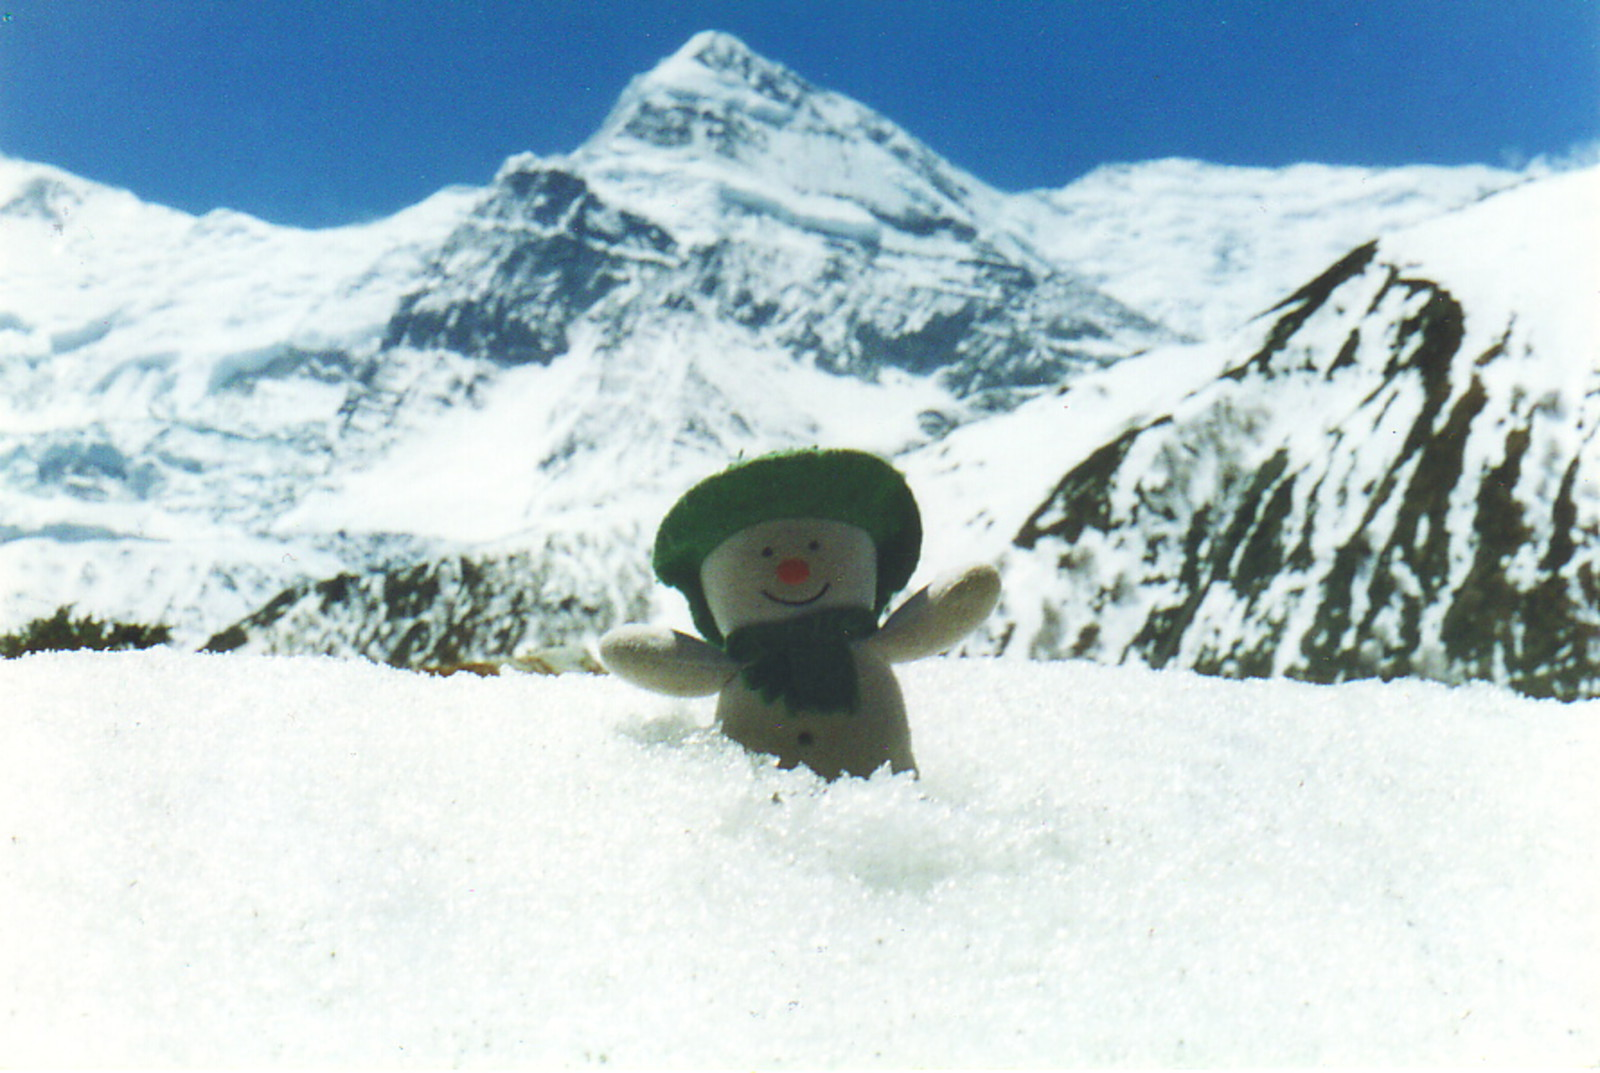 A snowman in the Himalayas